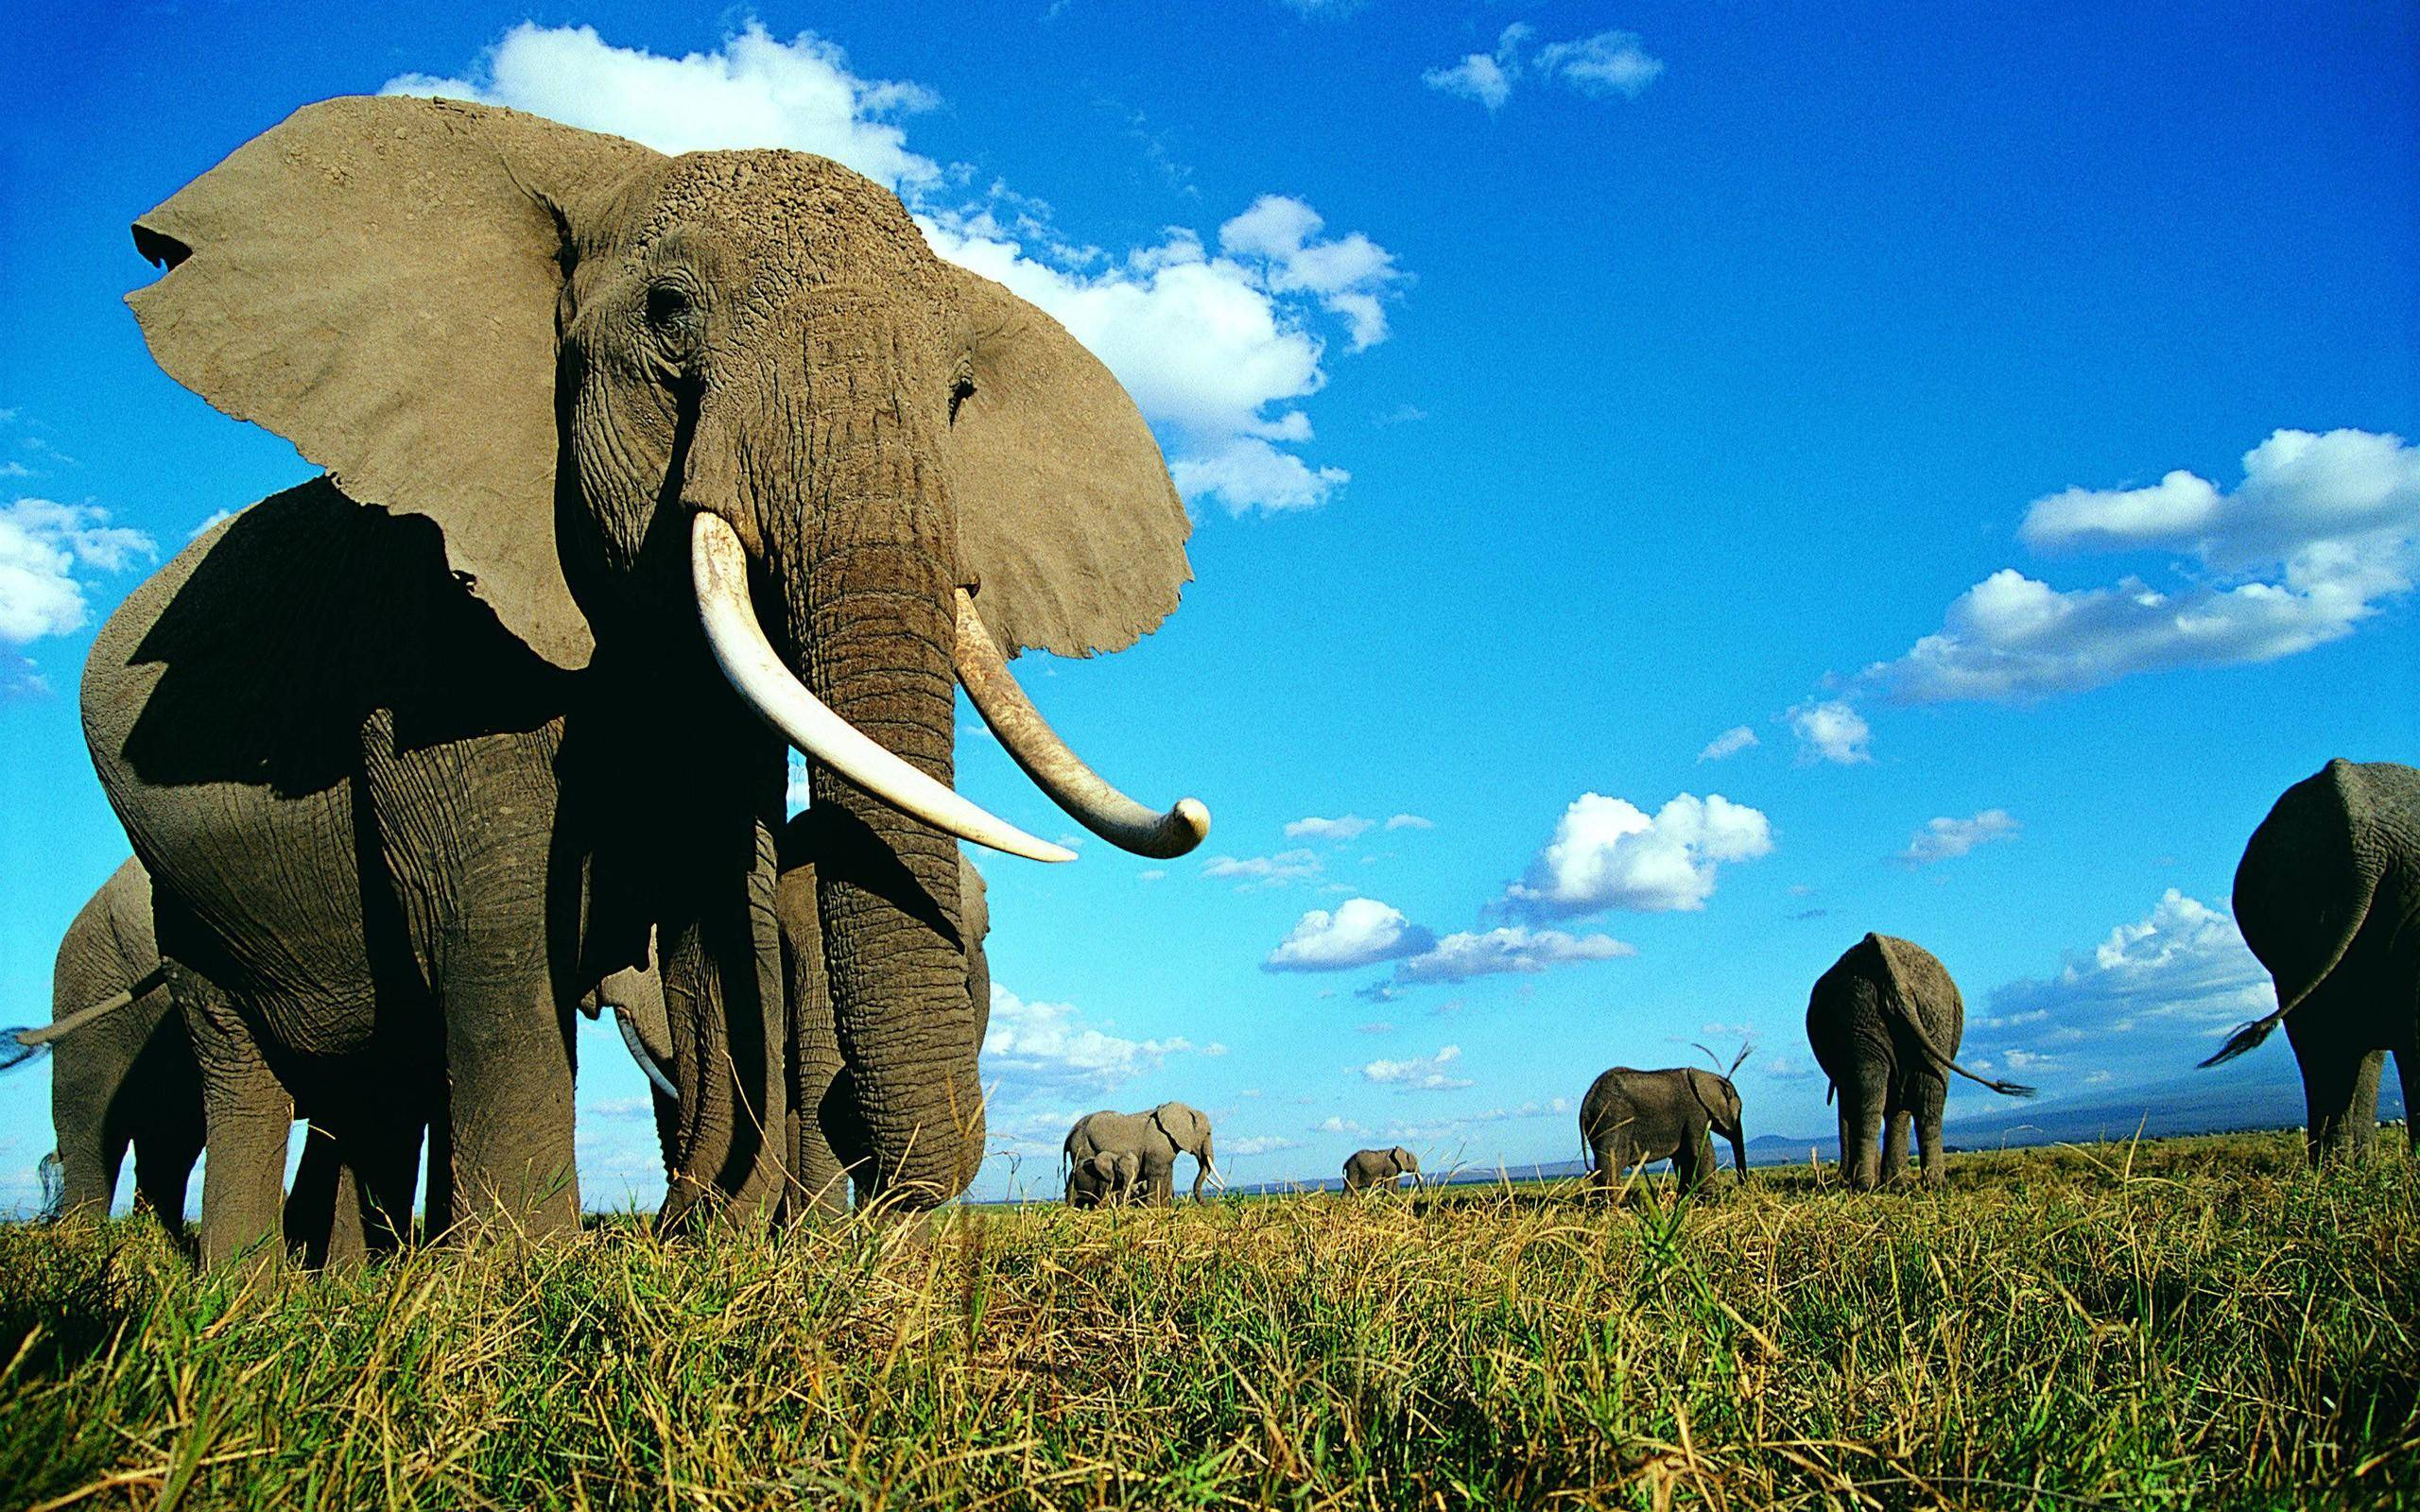 Hd wallpaper elephant - Wallpapers For Indian Elephant Background